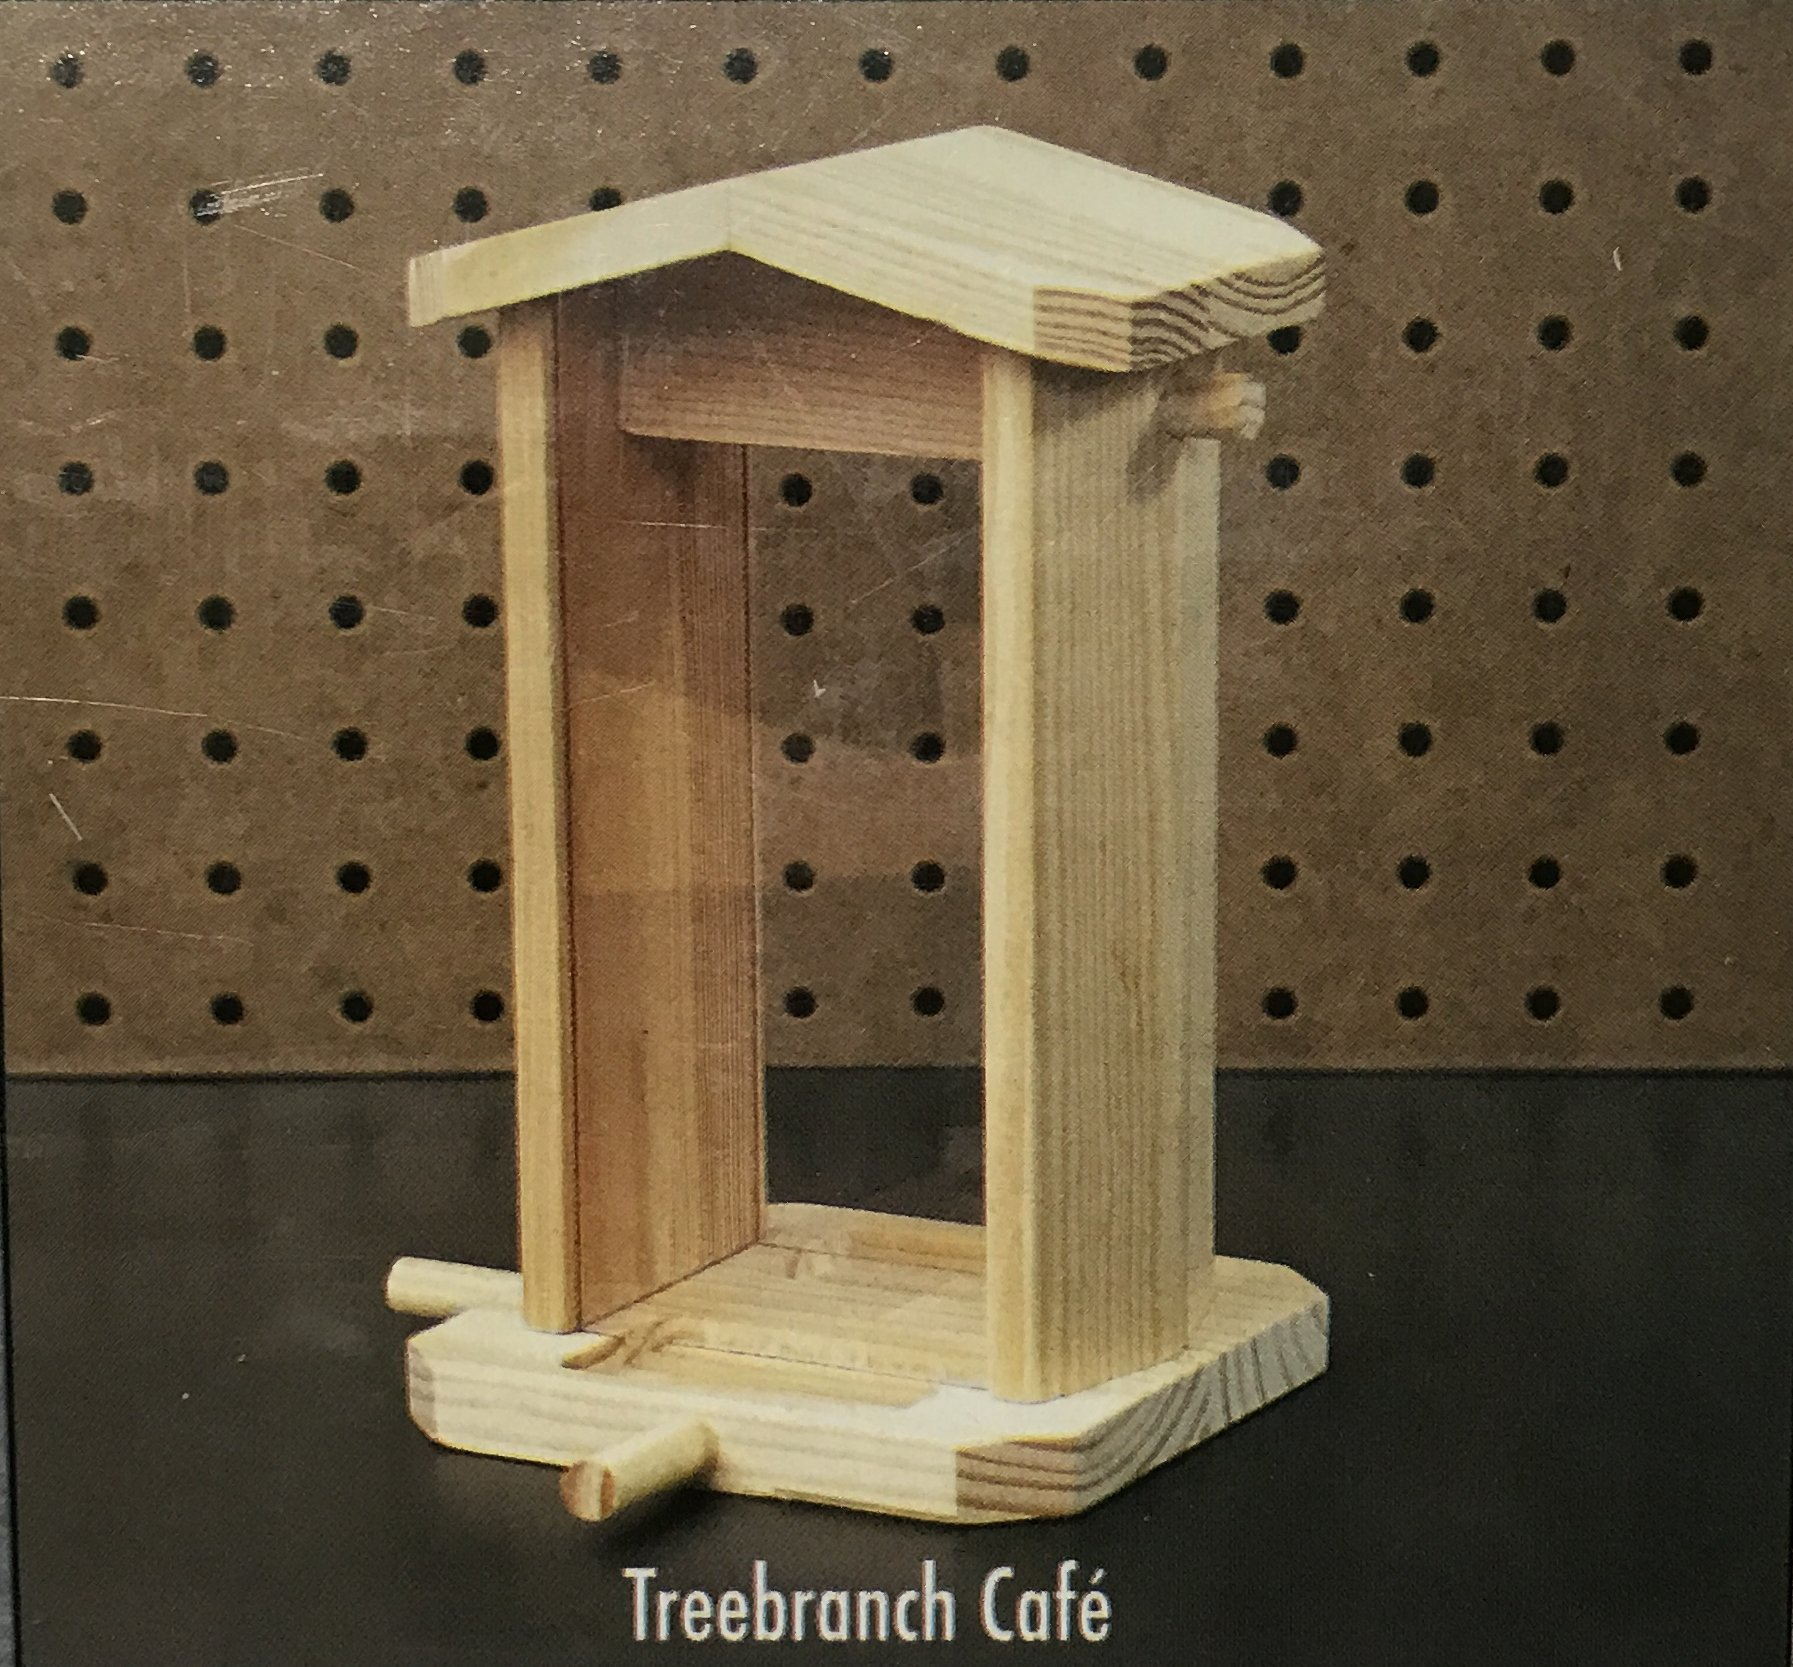 Wood Works Treebranch Cafe Birdhouse Kit